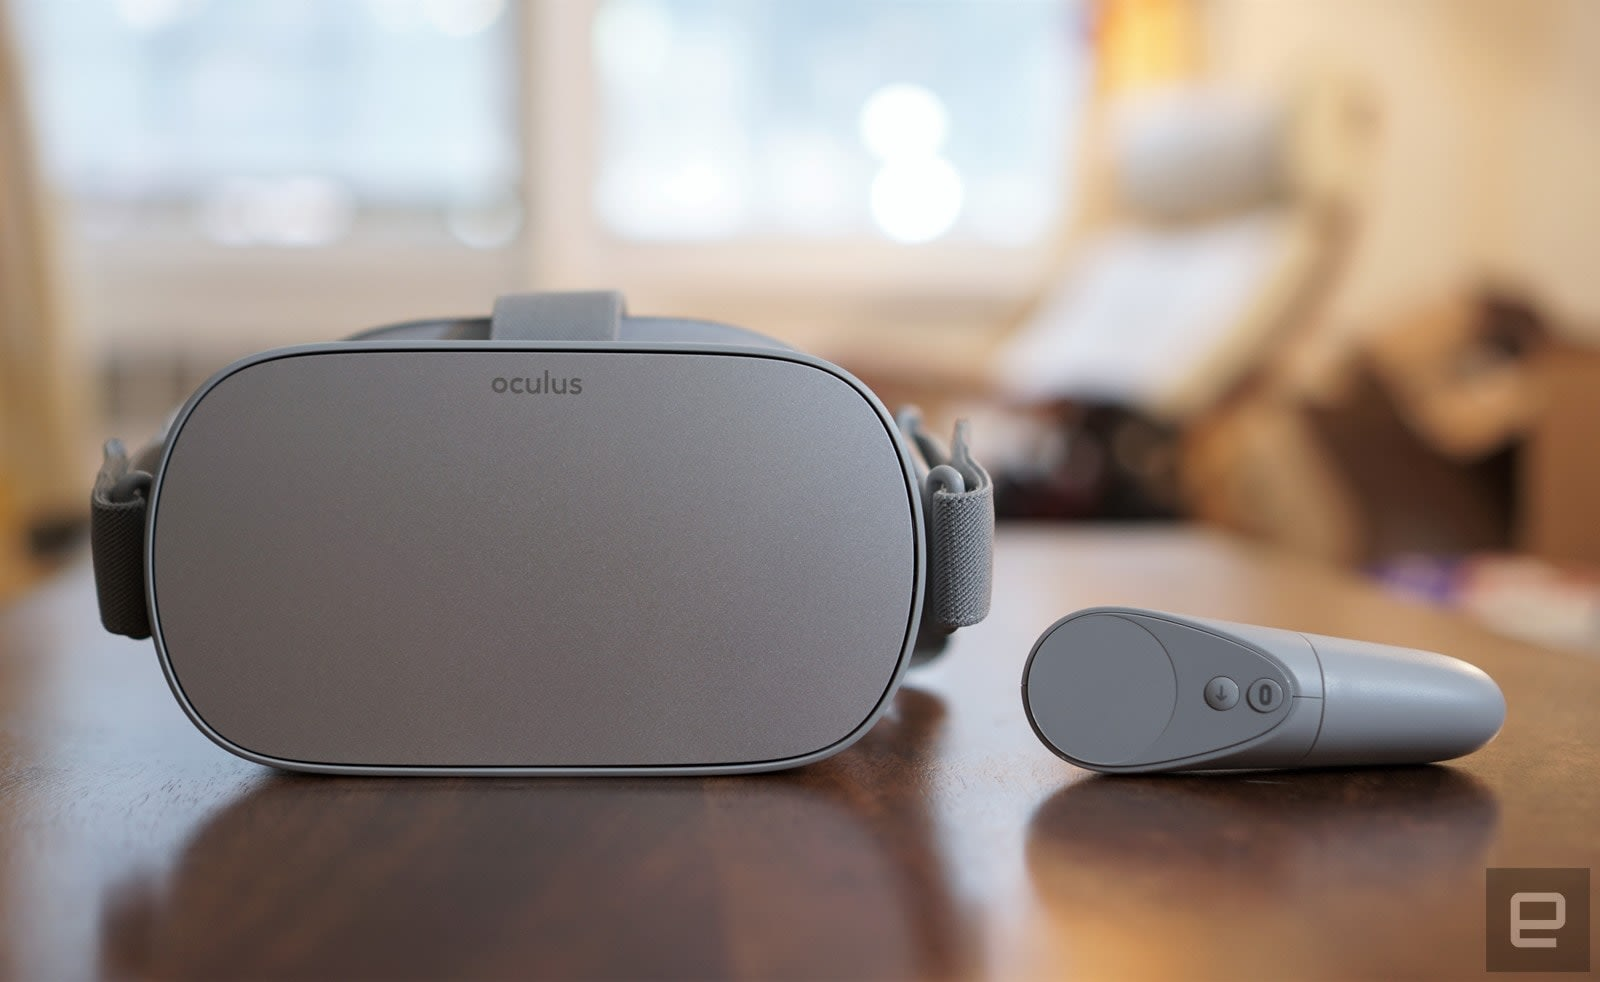 55a216e4bc4f Oculus Go review  Finally